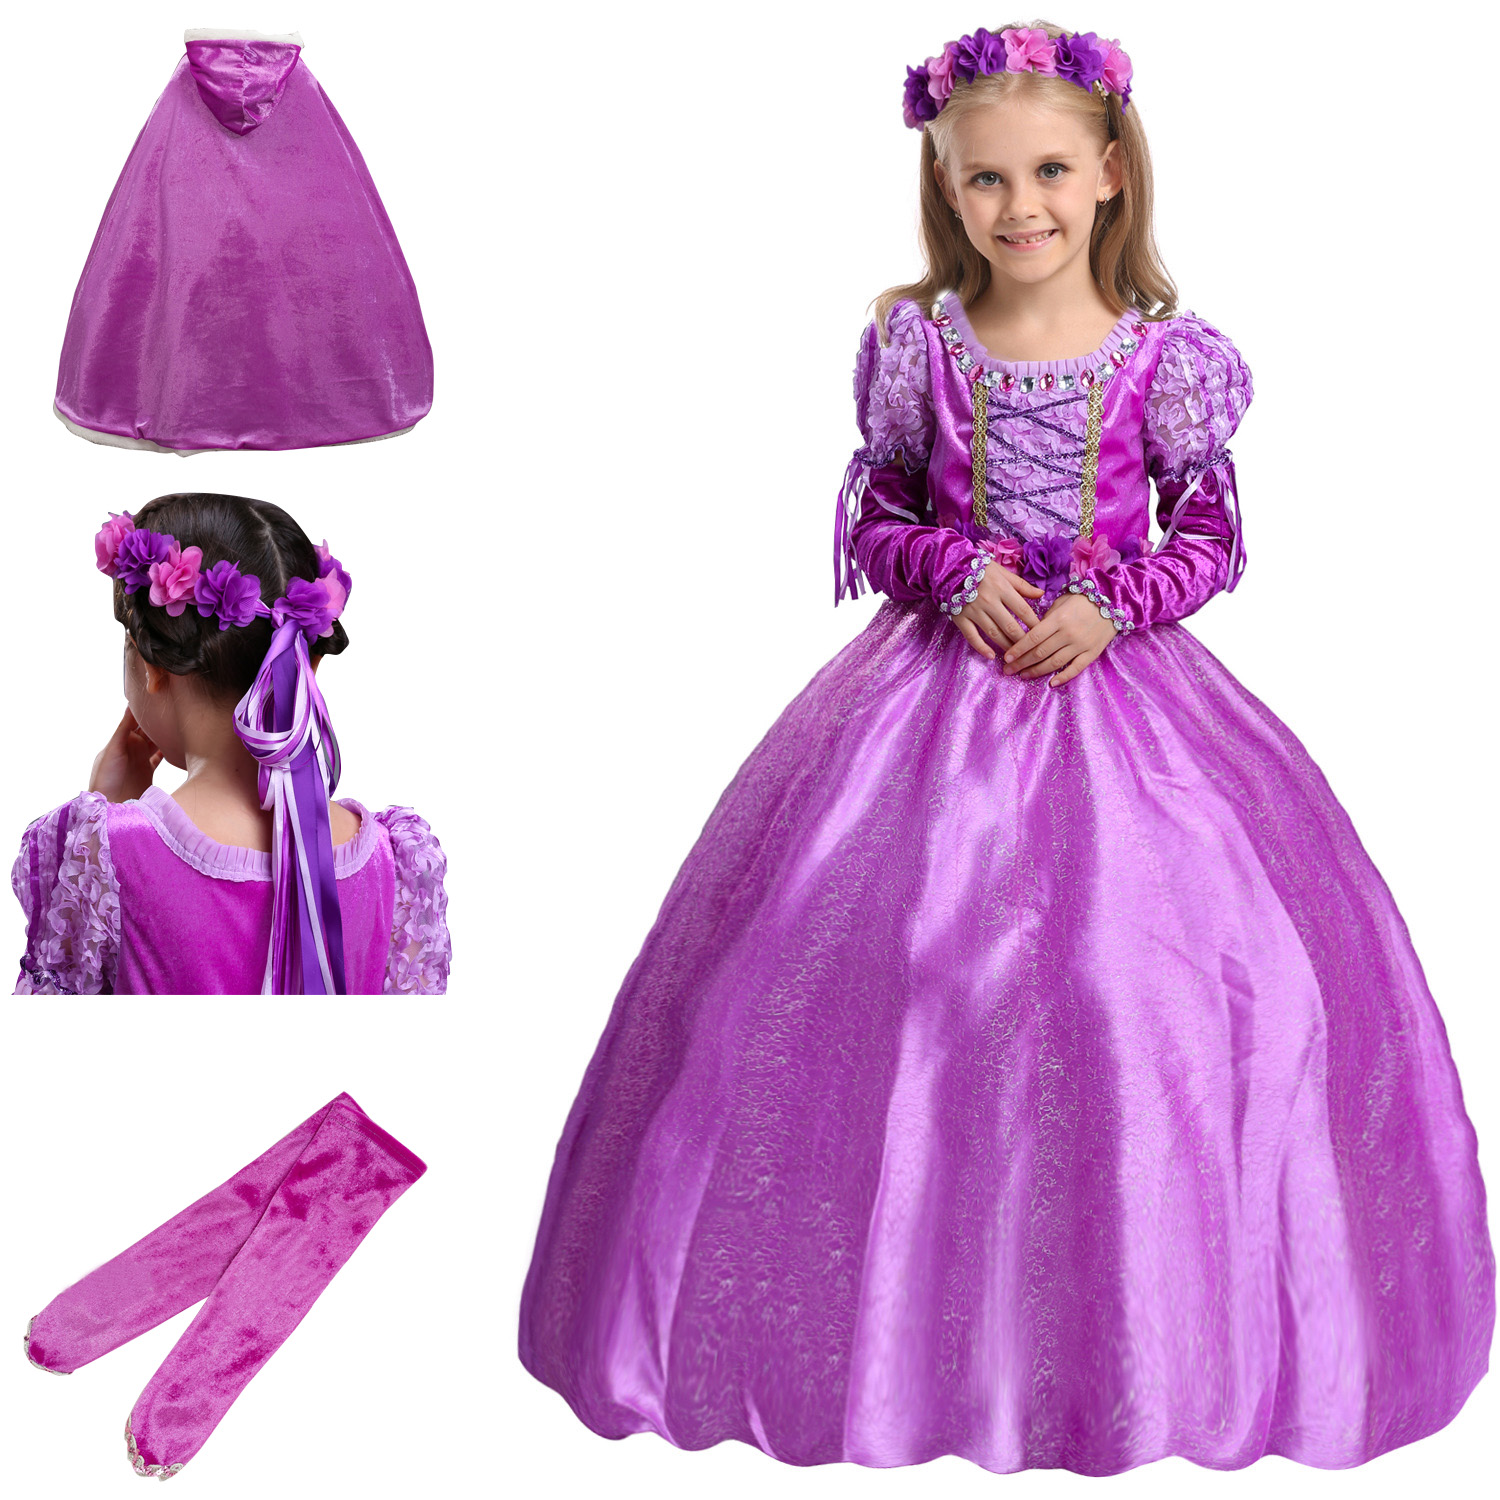 29bcd361e Fashion Children s Dressing Up Outfits Girls Dresses for Party with ...